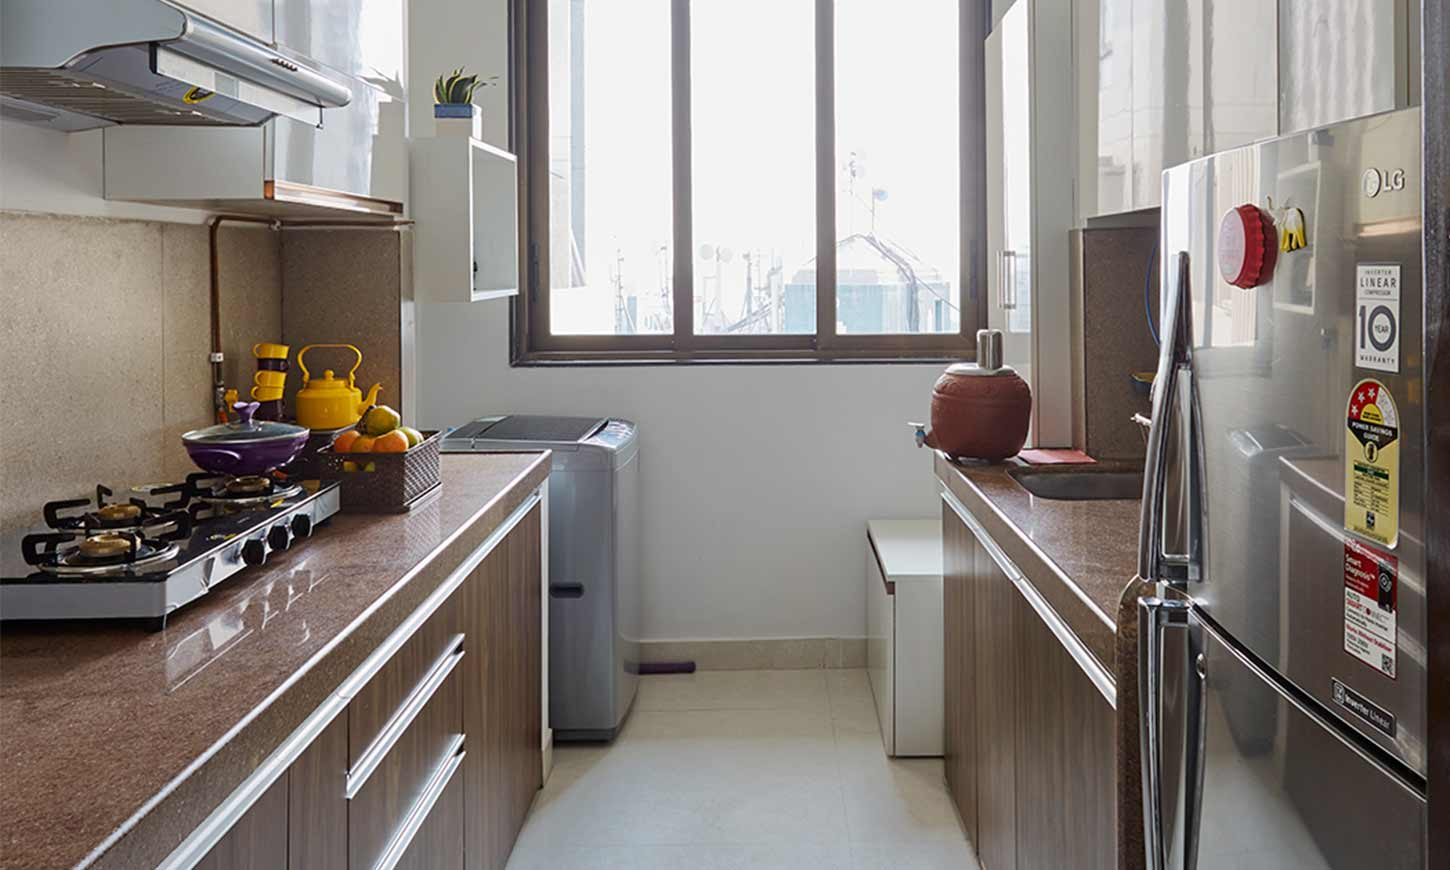 Modular kitchen designs mumbai with a parallel kitchen with brown countertops